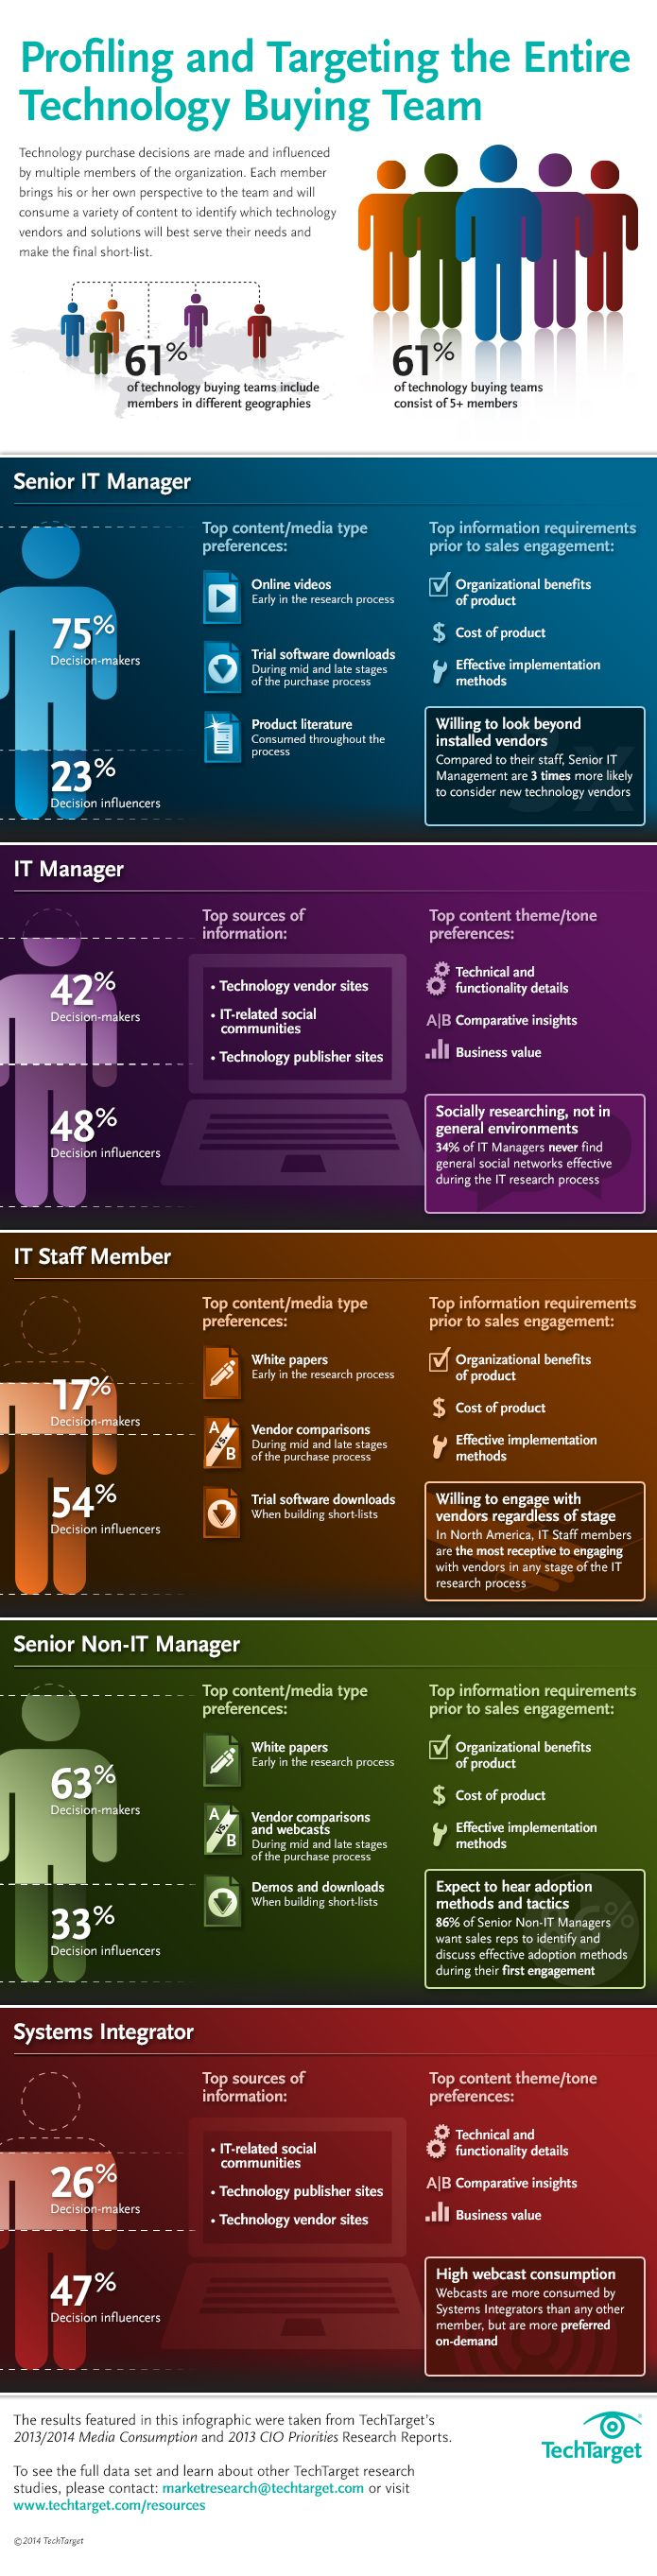 Tech Target Profiling the Technology Buying Team Infographic